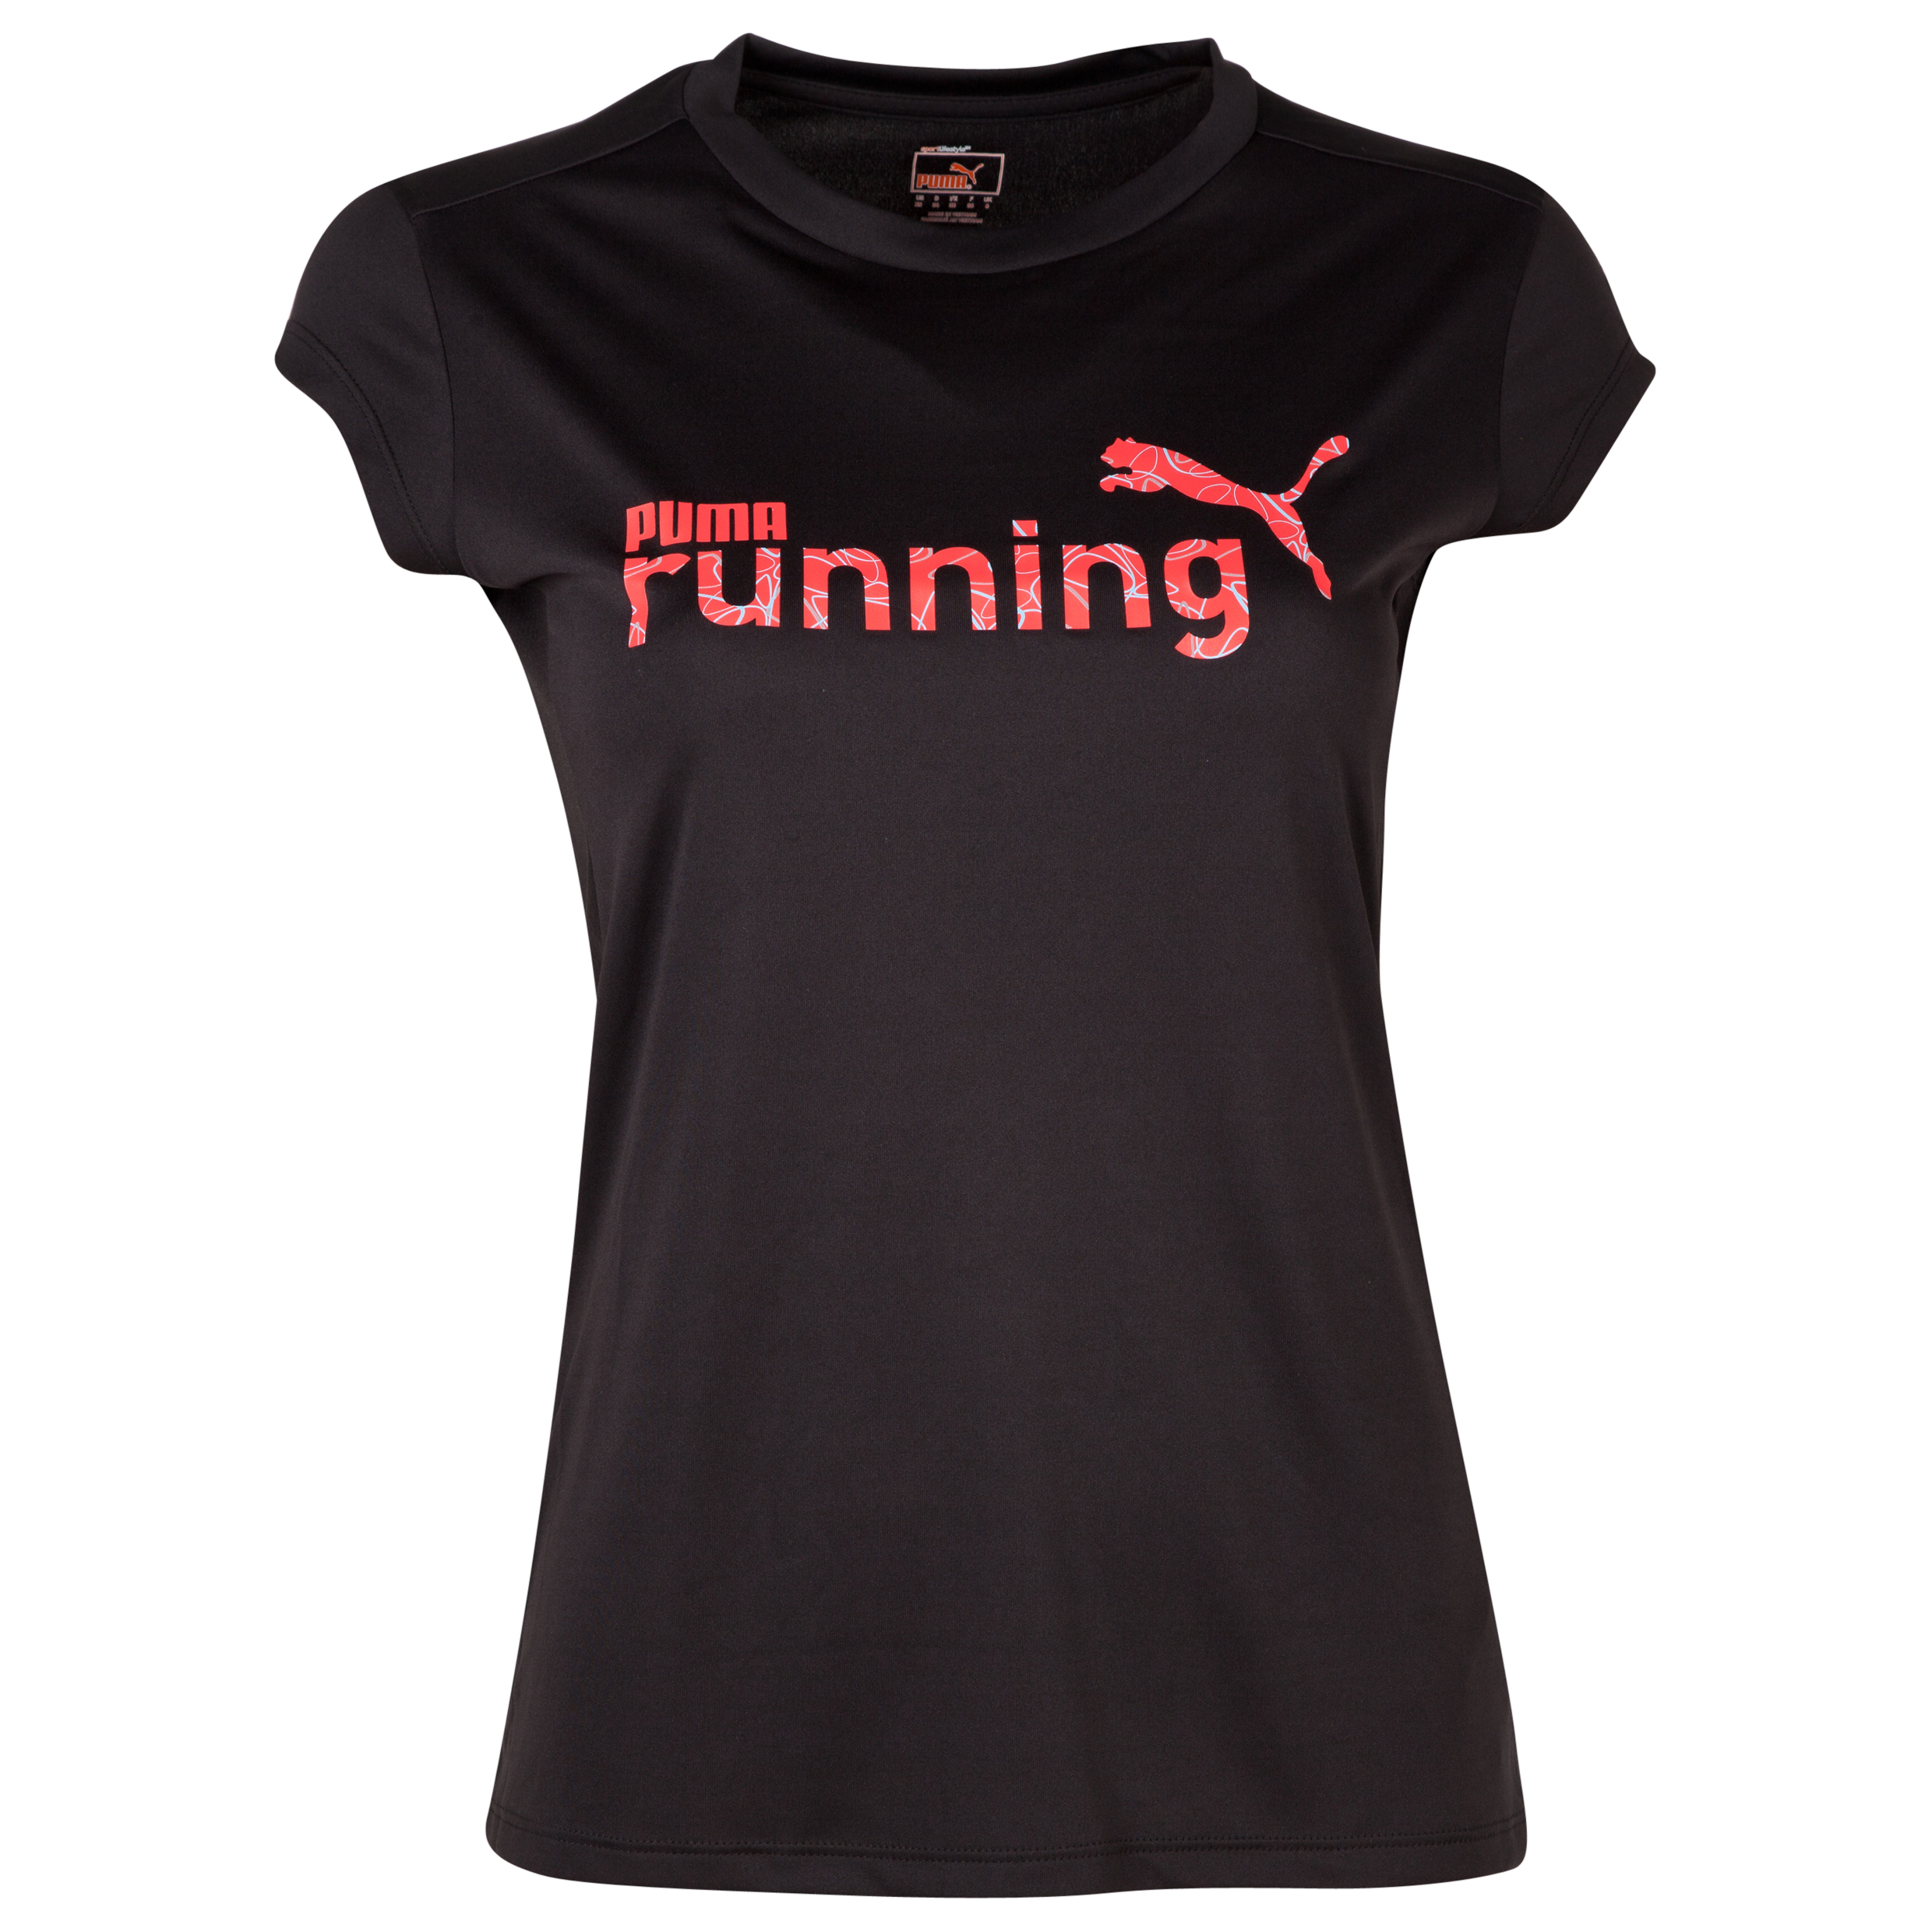 Puma Complete Running Graphic Slogan Short Sleeve Tee - Black - Womens